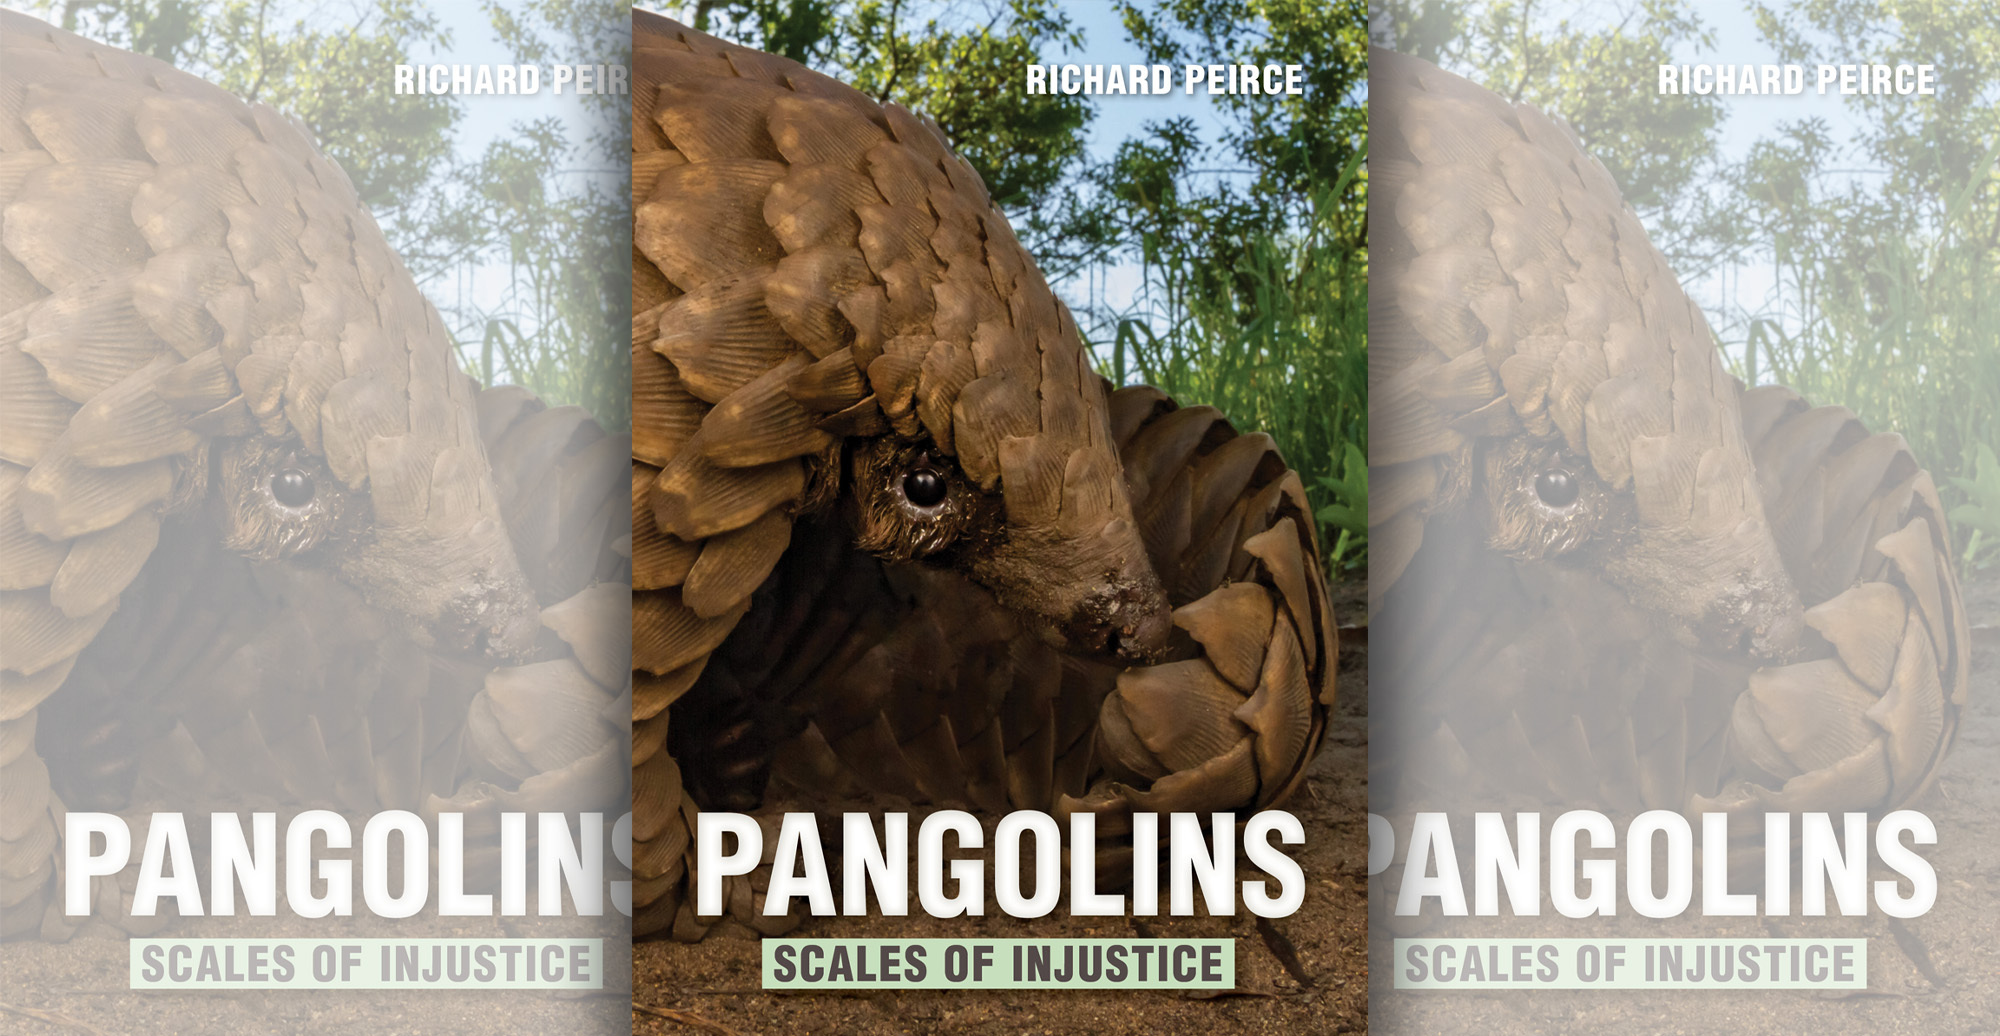 BOOK EXTRACT: Pangolins: Scales of Injustice by Richard Peirce